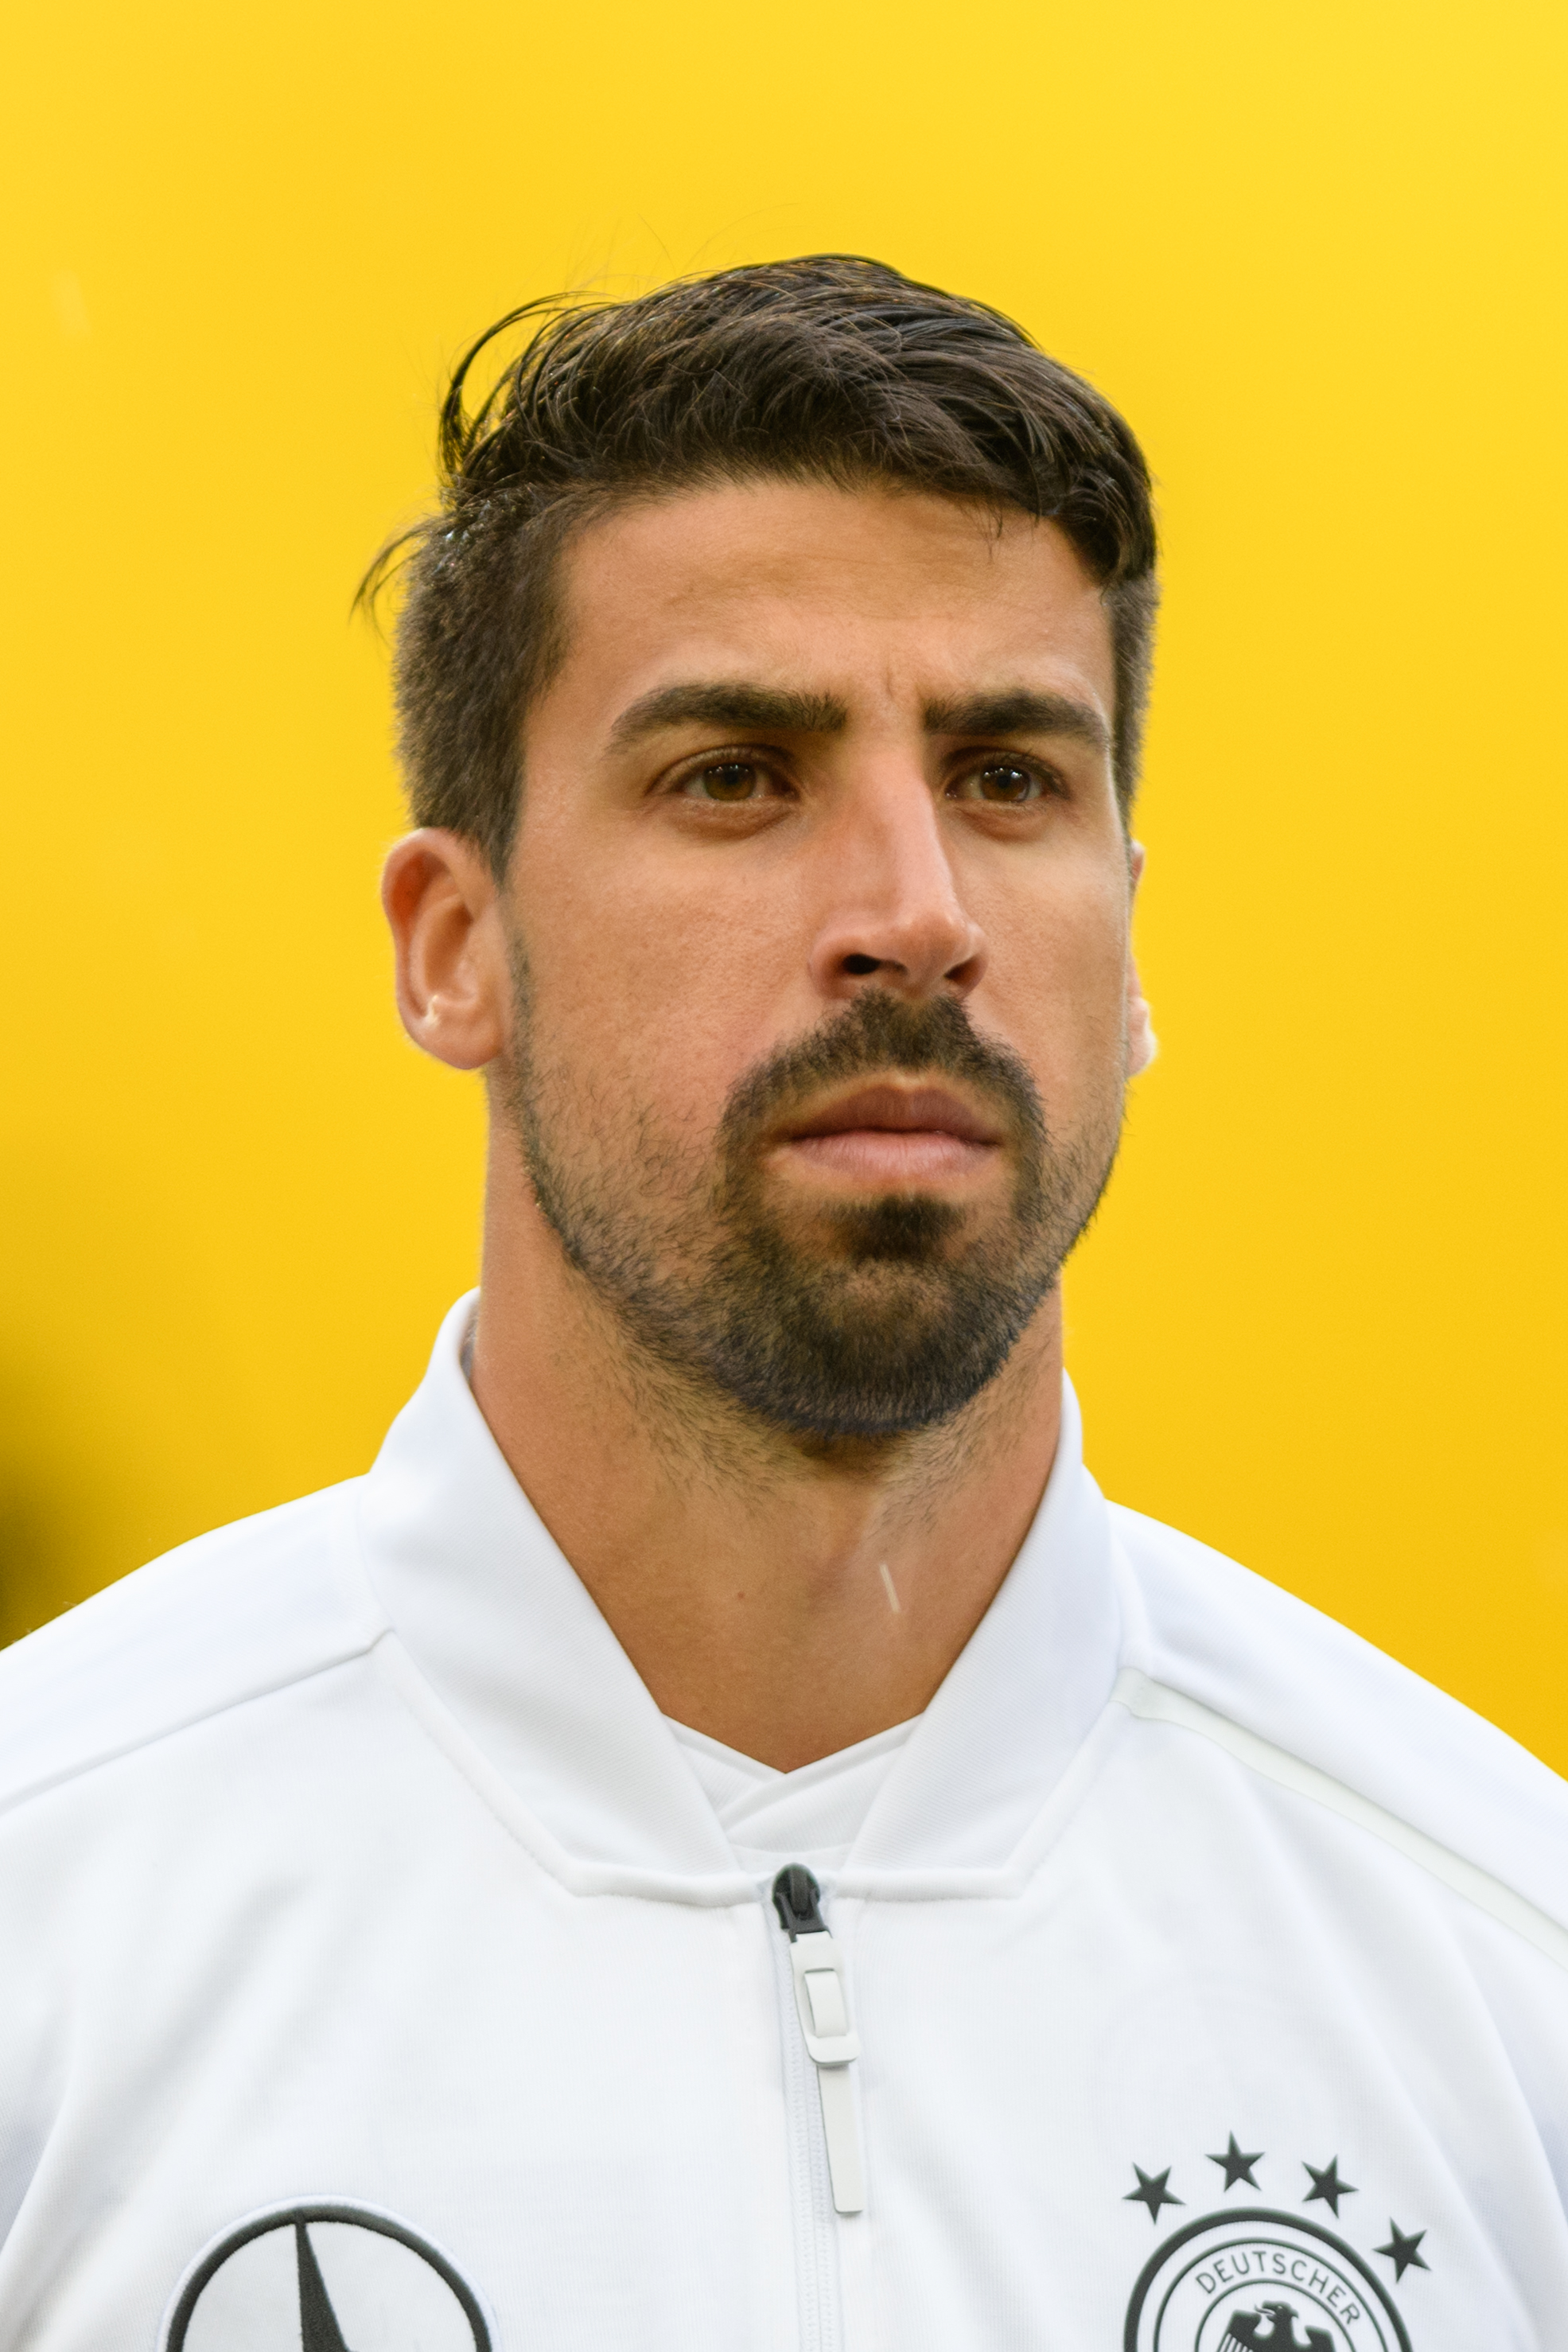 The 31-year old son of father Lazhar Khedira and mother Doris Khedira Sami Khedira in 2018 photo. Sami Khedira earned a 11 million dollar salary - leaving the net worth at 60 million in 2018